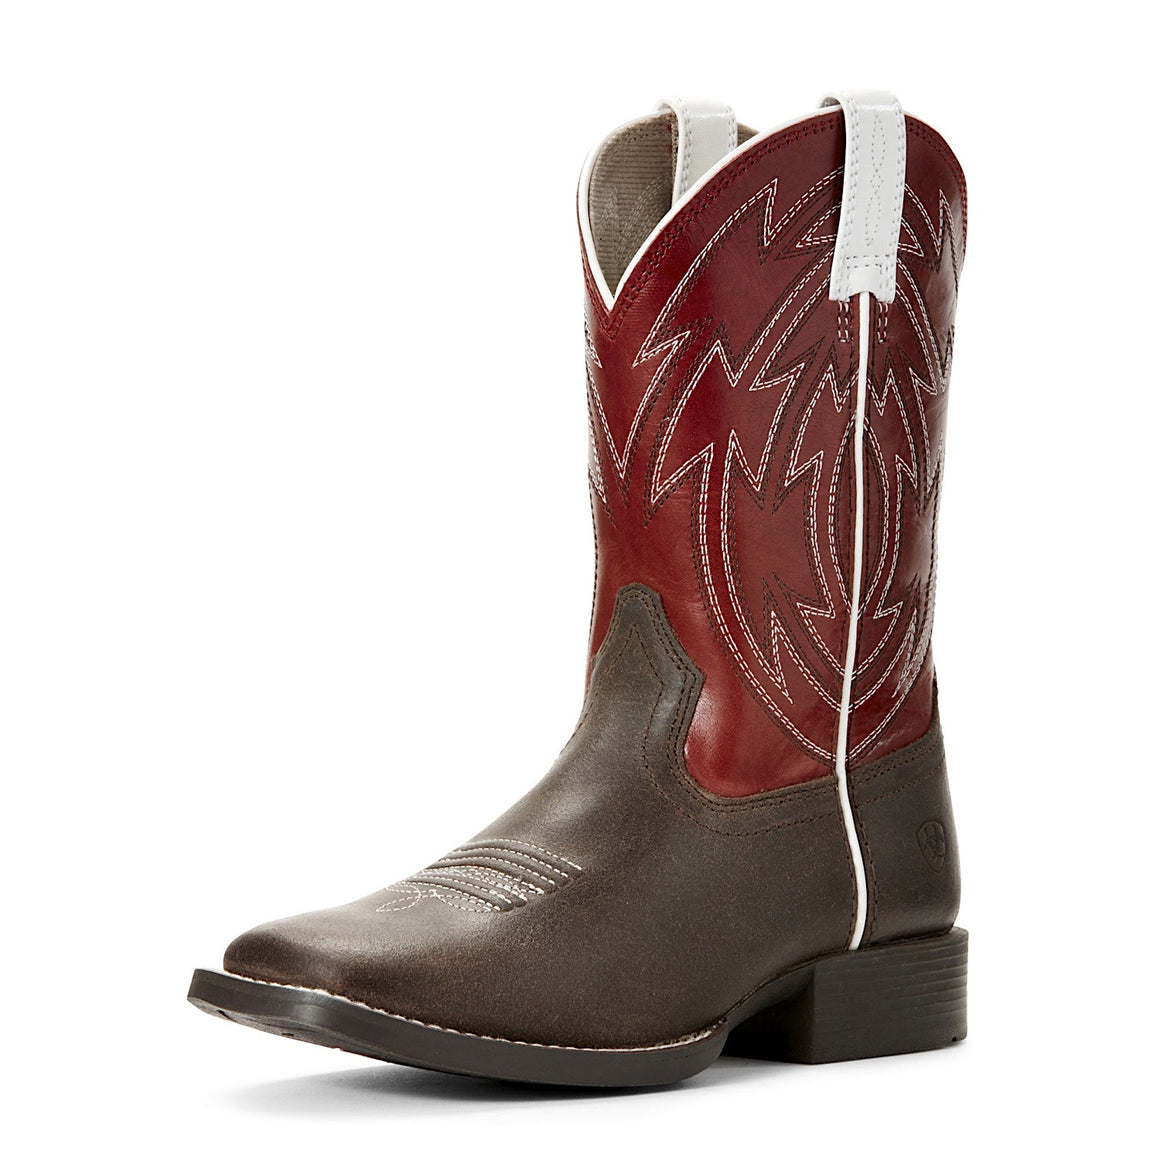 14b1aa88b74 Buy Ariat Kids Boots - Discount Prices & Australia-Wide Delivery ...